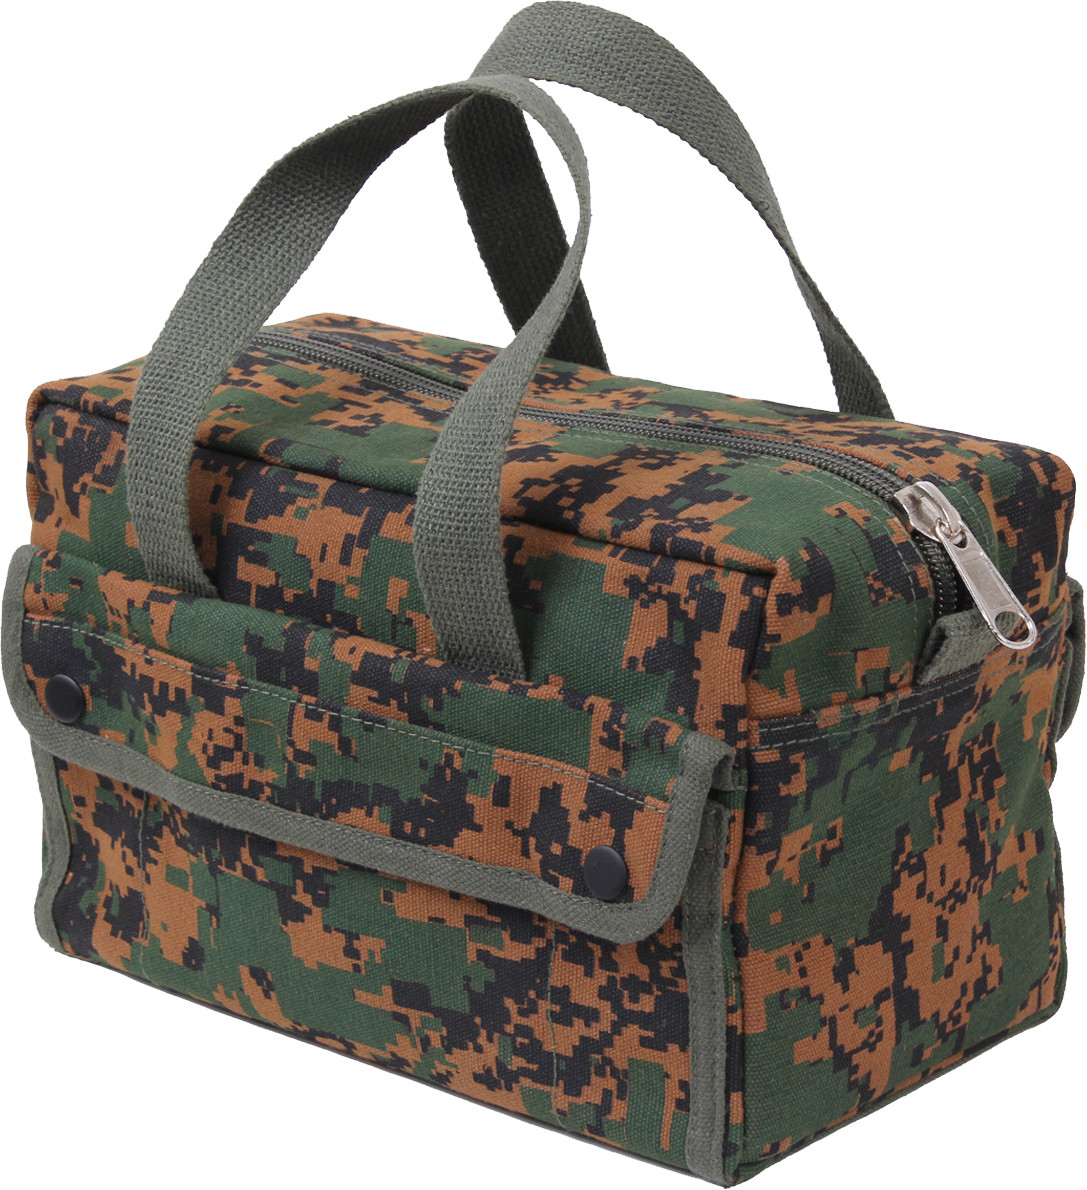 Woodland Digital Camouflage Military Canvas Mechanics Tool Bag cbe4d8e1321